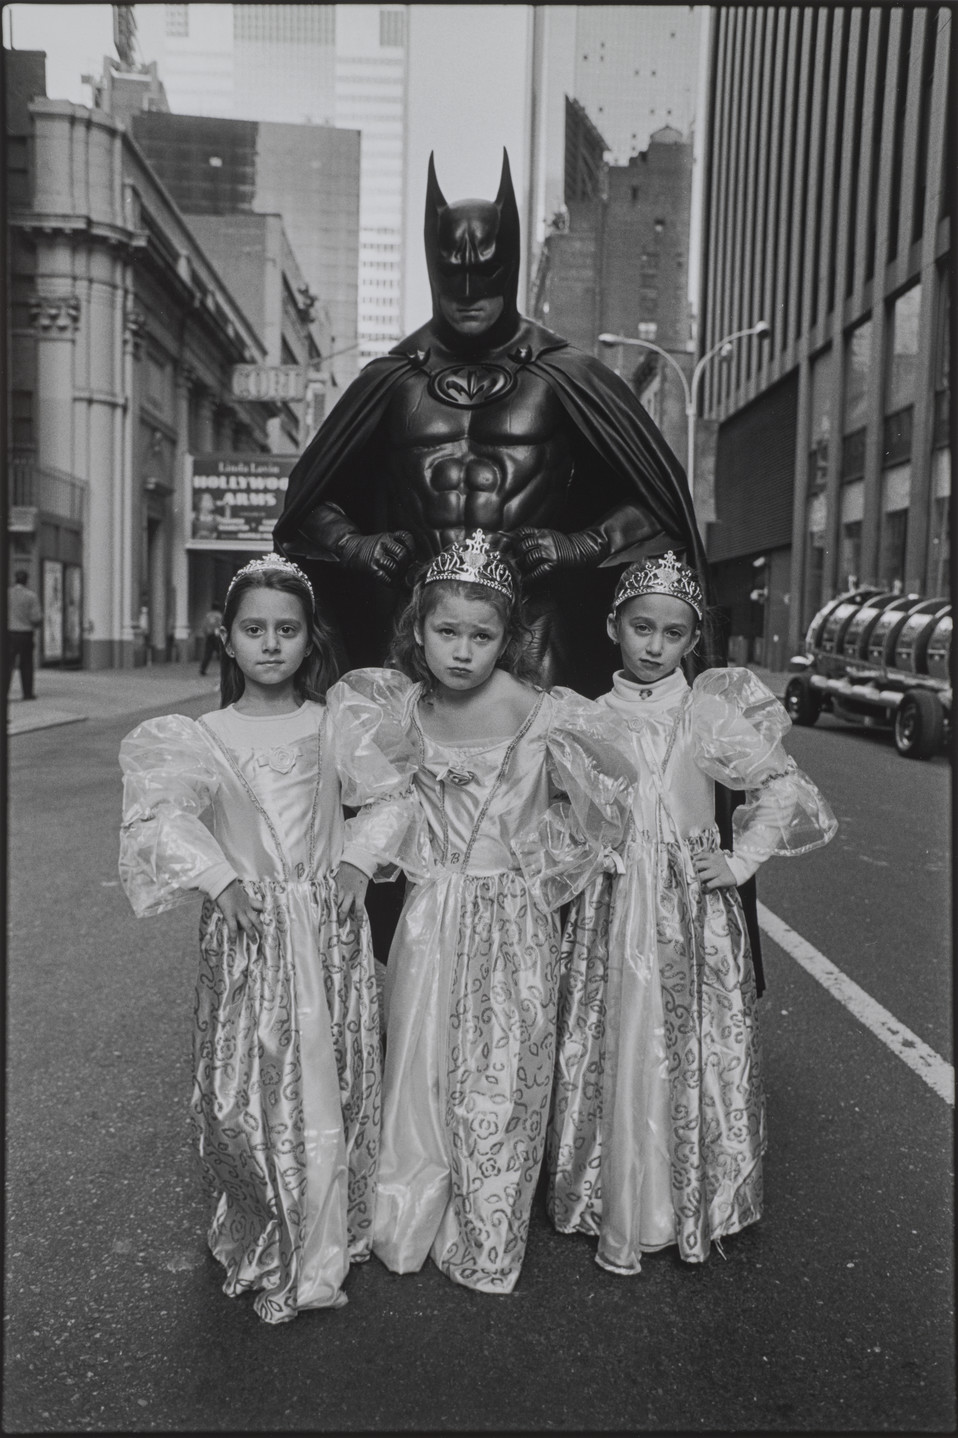 A black and white photograph of three young girls wearing matching princess dresses and crowns standing in front of a tall figure dressed in a Batman costume. All four stand in the middle of the street in a city setting, surrounded by buildings. The girls are posed with their hands on their hips and serious expressions.